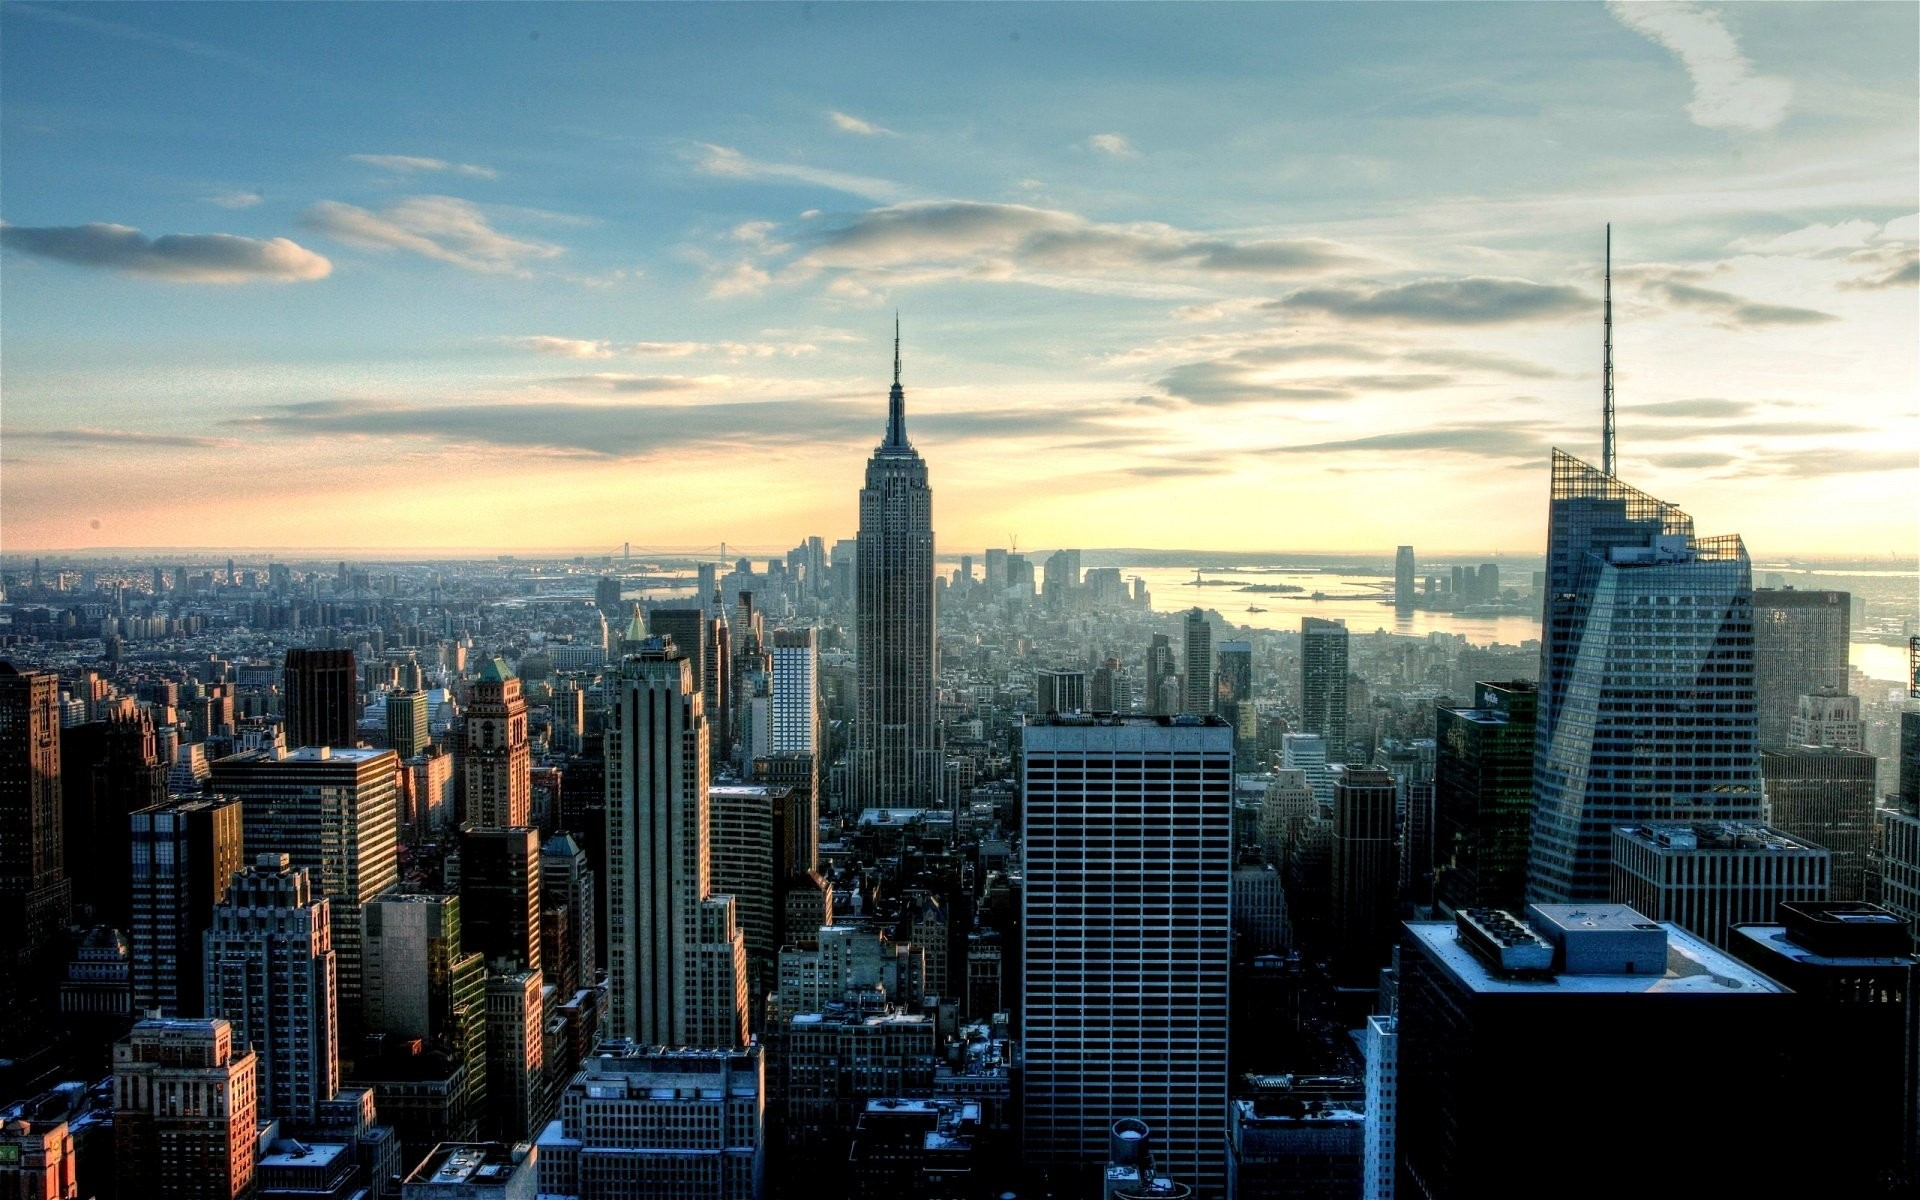 1920x1200 New York Skyline 2 Wallpaper HD hd backgrounds hd screensavers hd .